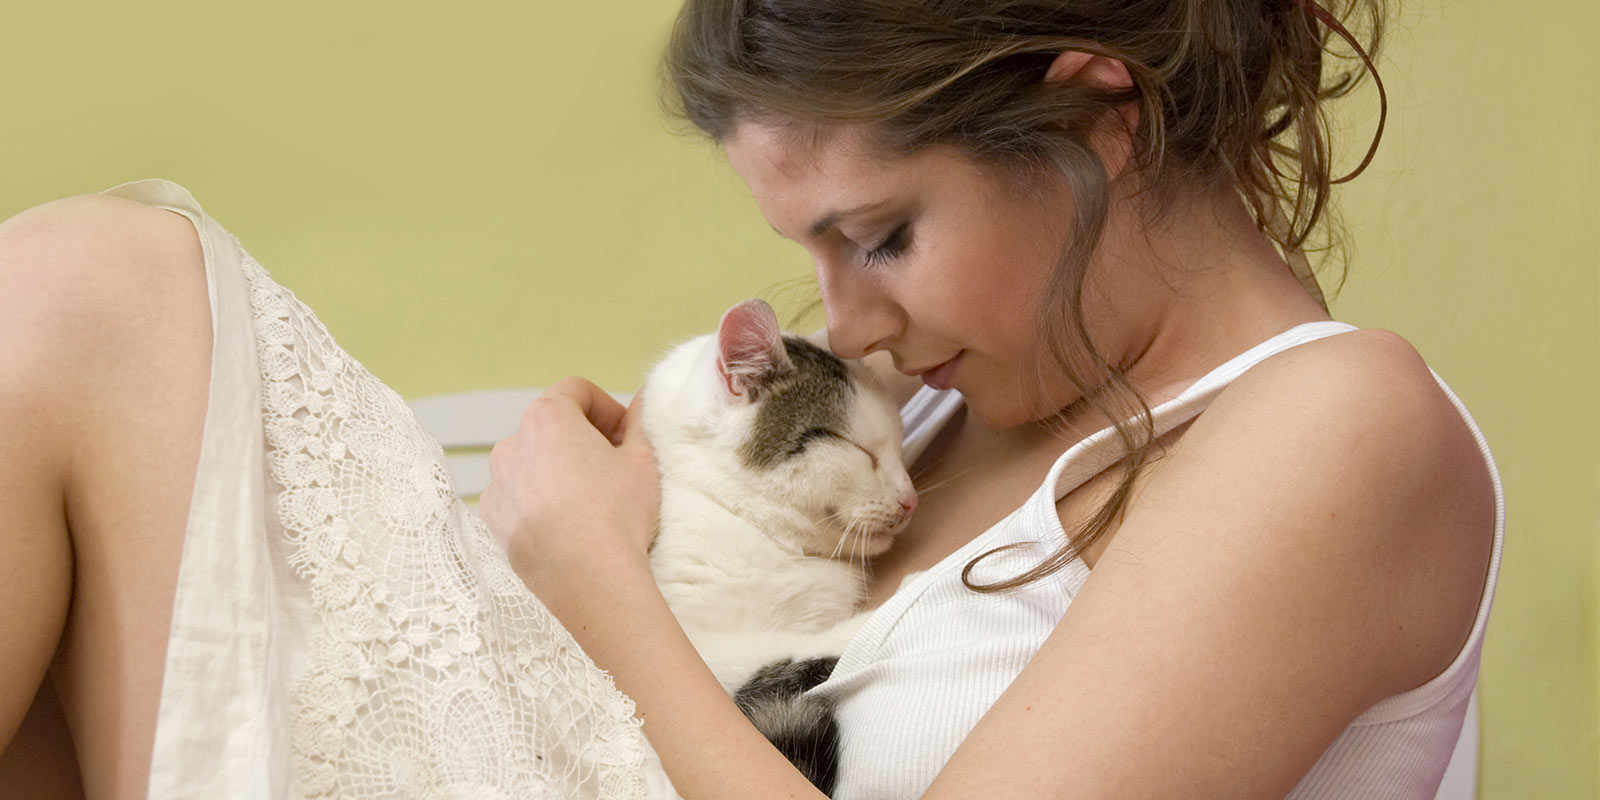 Woman cradling her cat.